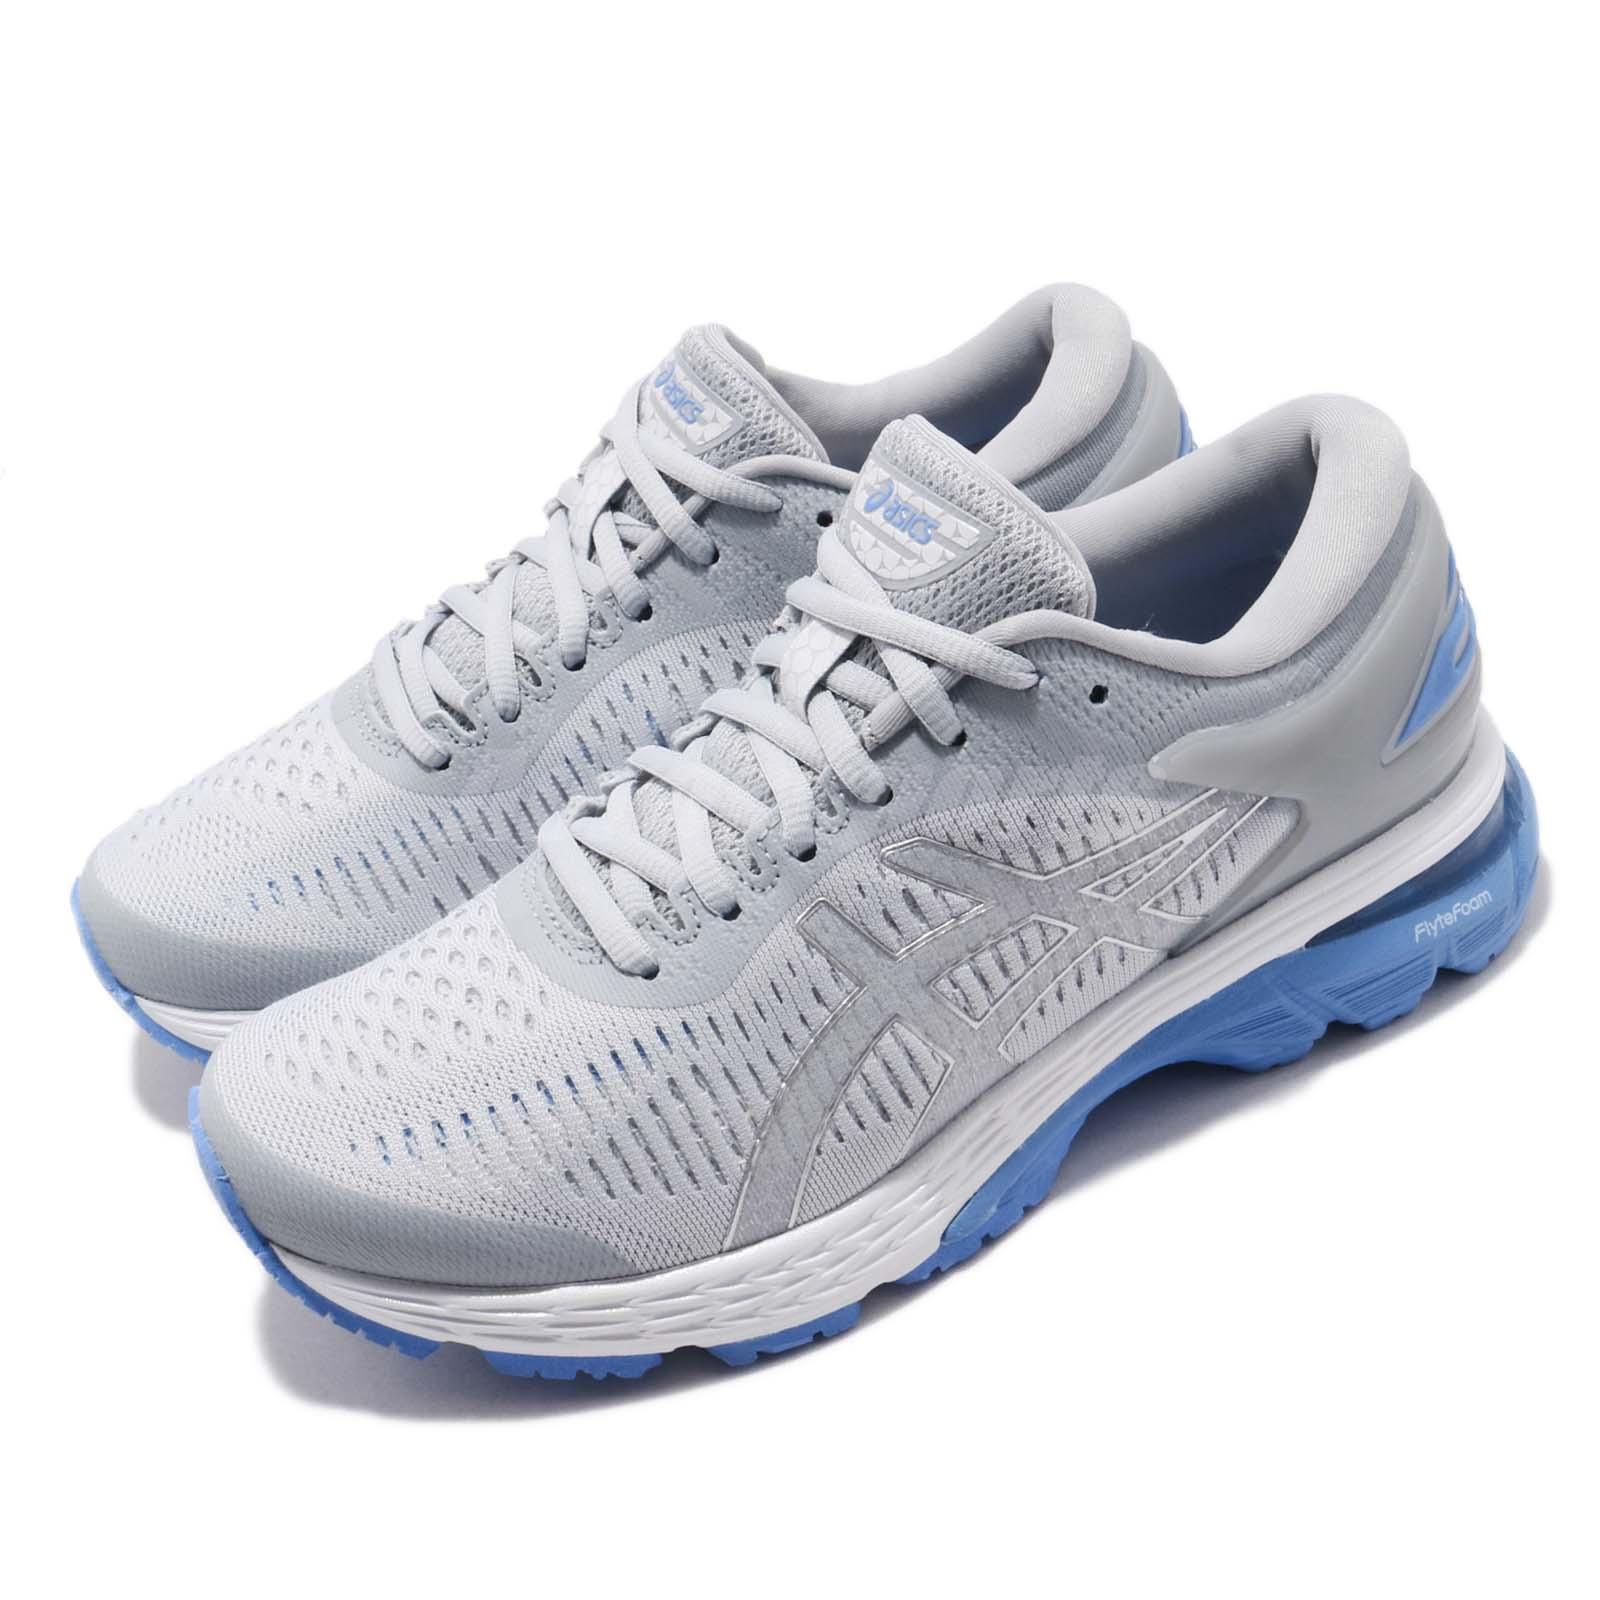 8be64d3ded46 Details about Asics Gel Kayano 25 D Wide Grey Blue Coast Women Running Shoes  1012A032-022